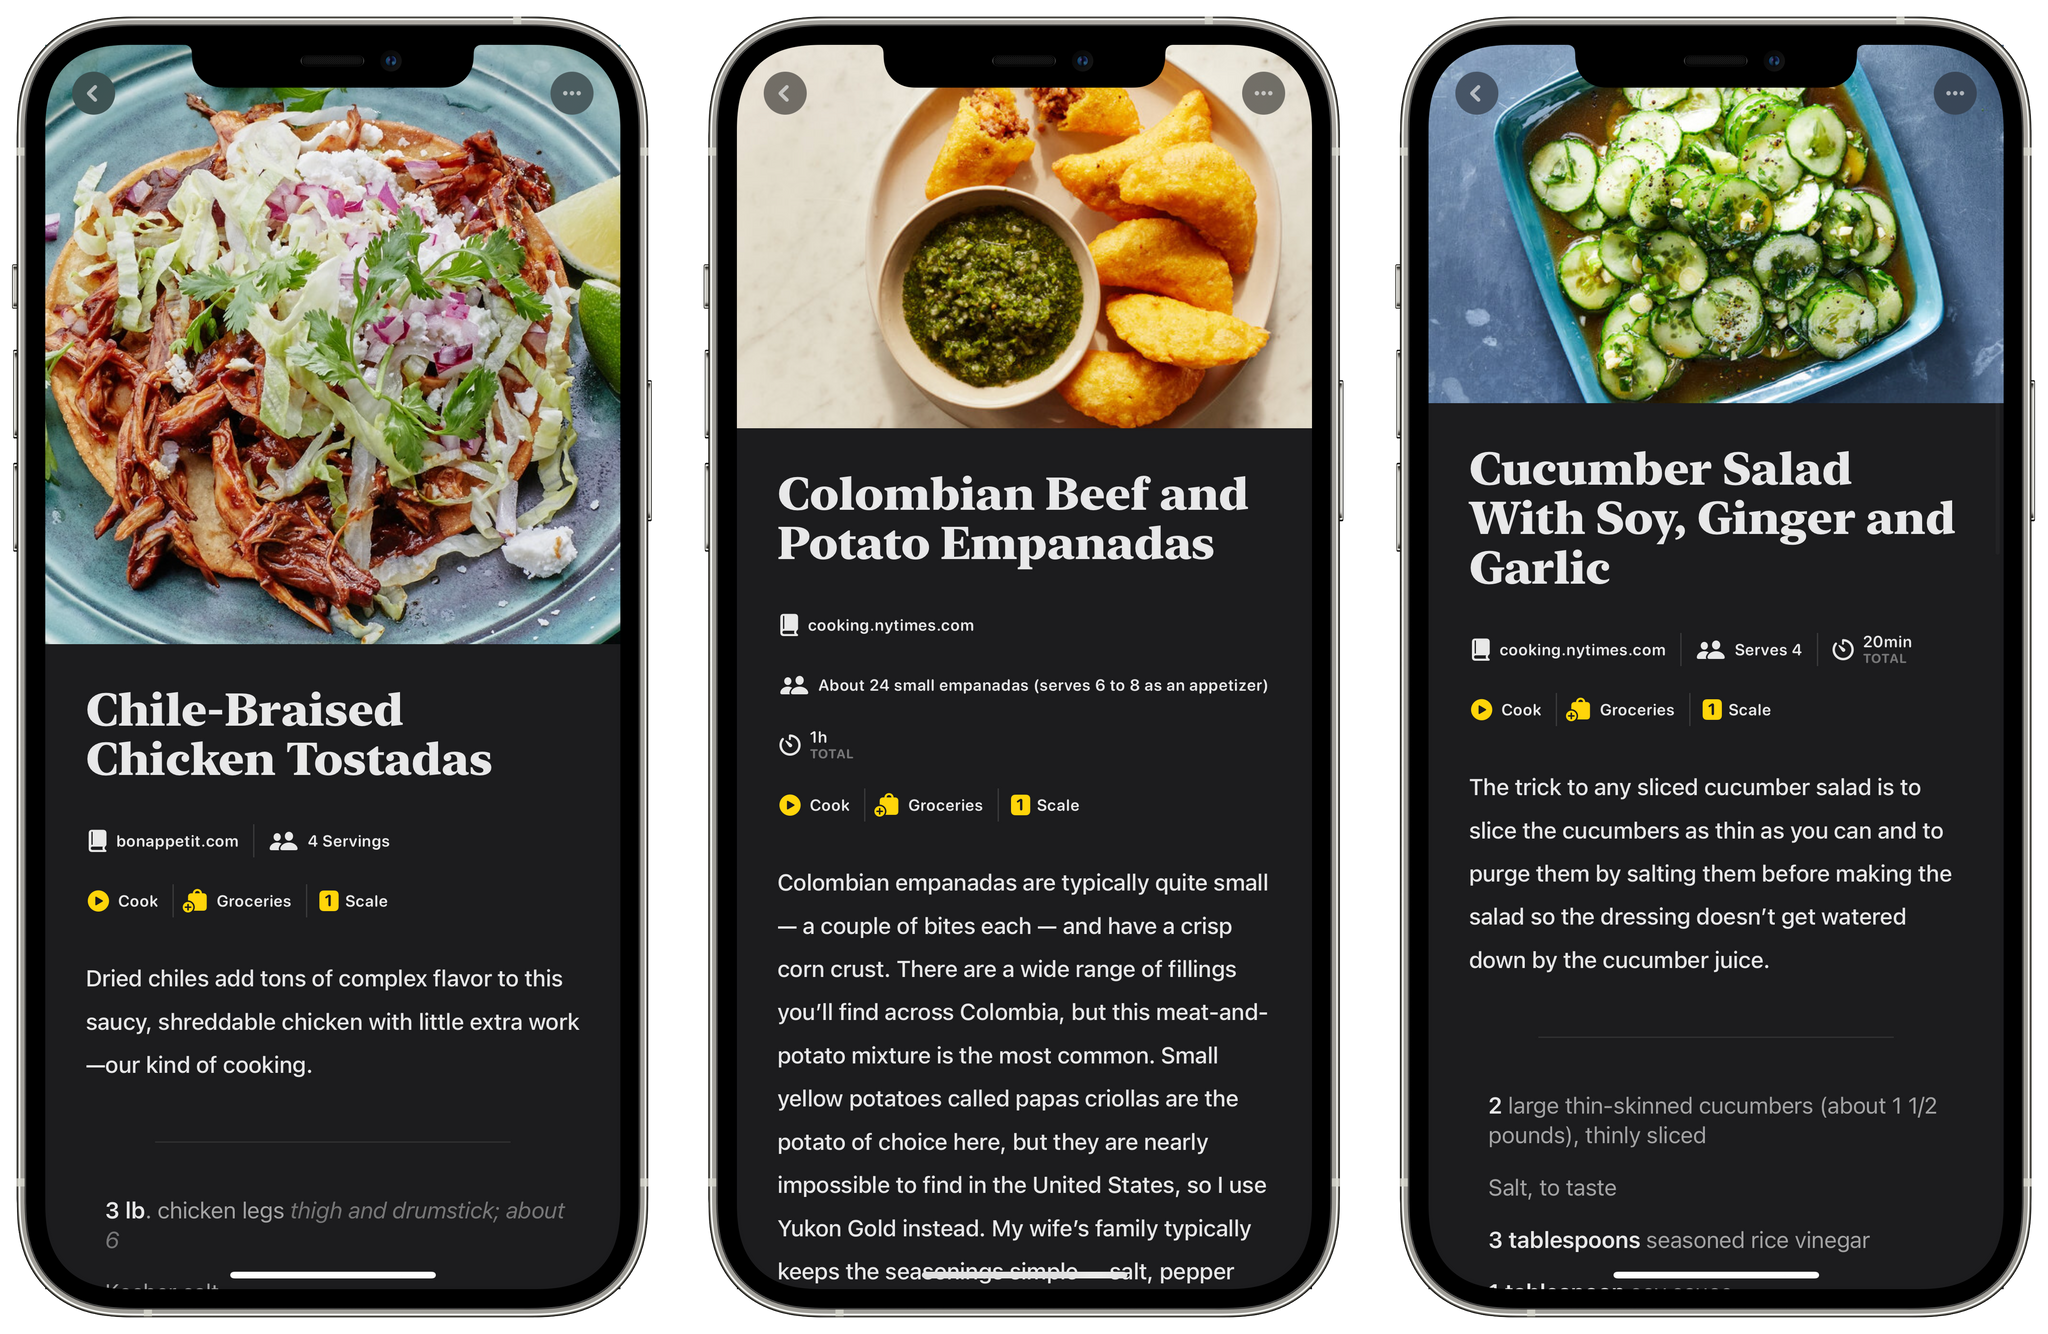 Its smaller screen isn't ideal for cooking, but the iPhone is an excellent way to find new recipes.